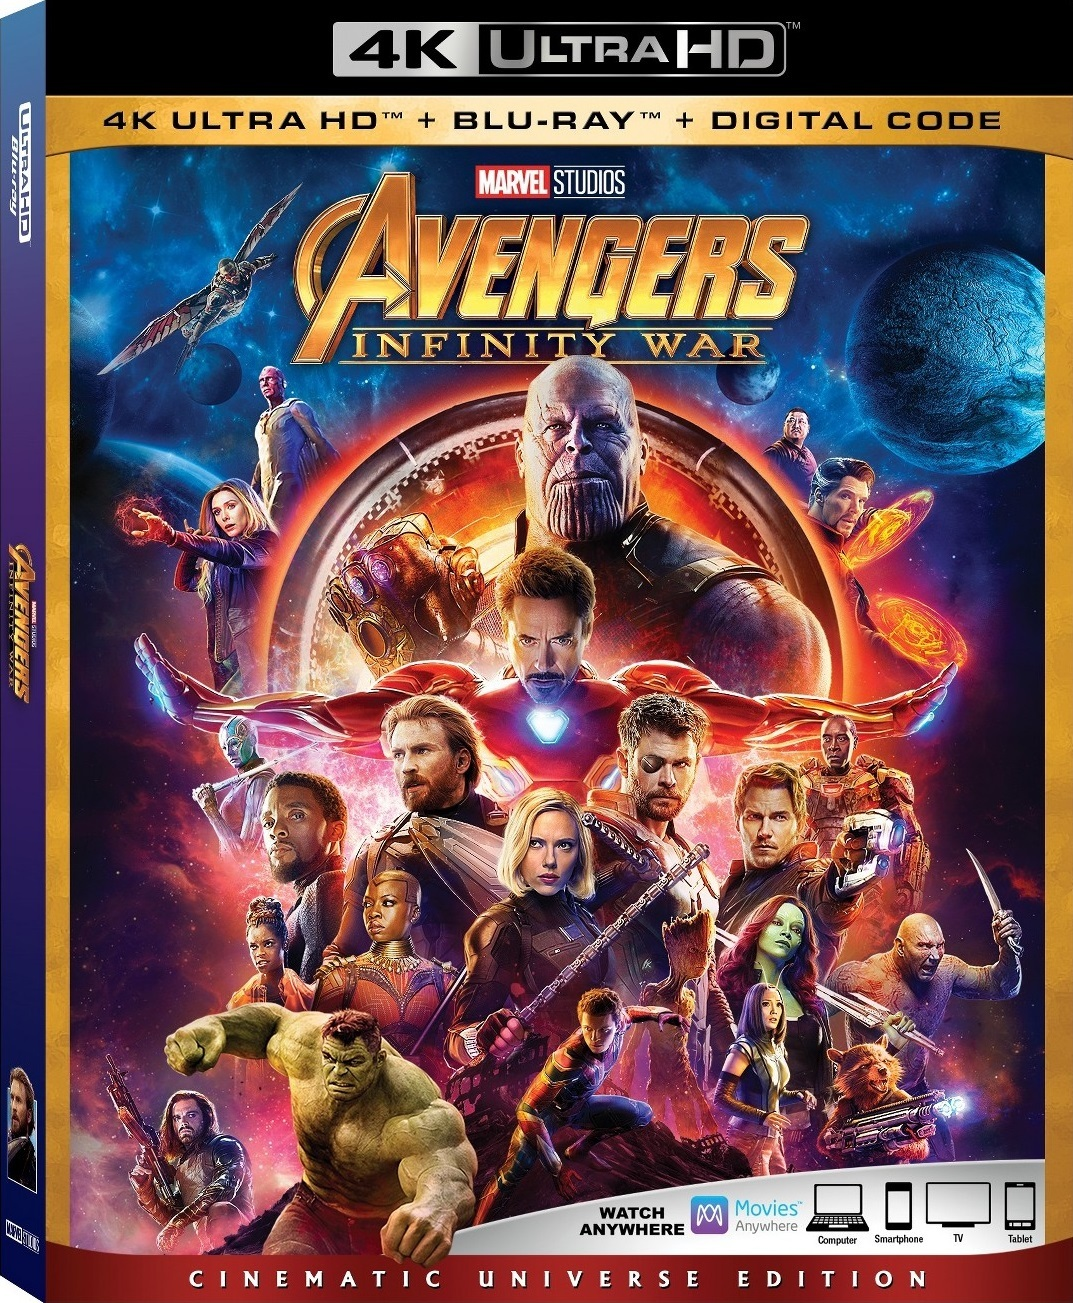 Avengers: Infinity War (2018) poster image